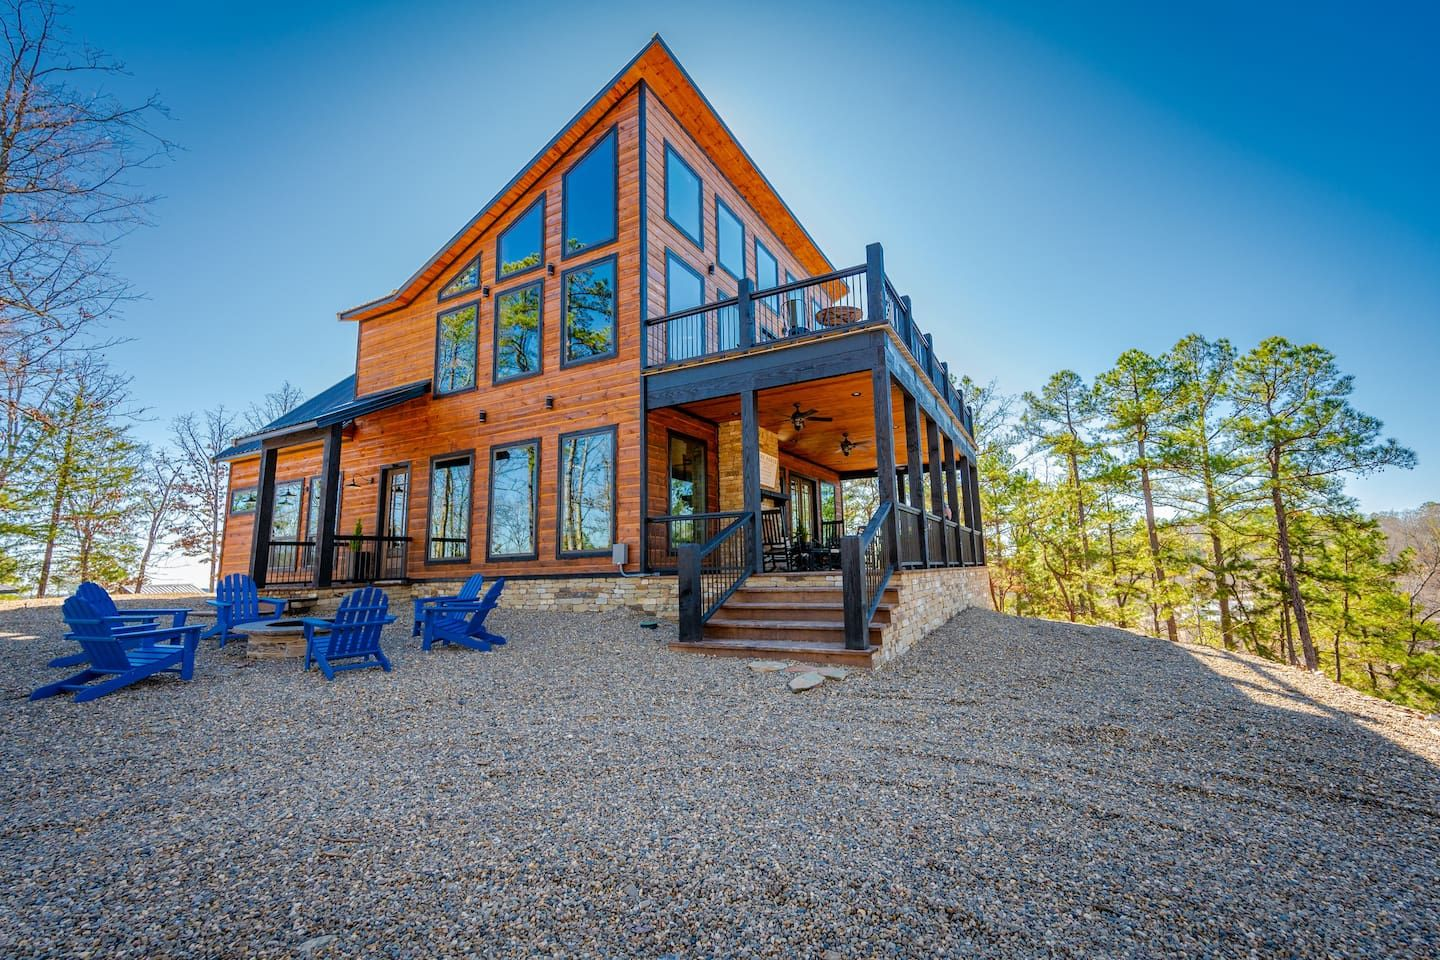 Brand New Mountain Top Luxury Cabin Sleeps 20 Cabins For Rent In Broken Bow Oklahoma United States Luxury Cabin Cabin Broken Bow Oklahoma Cabins